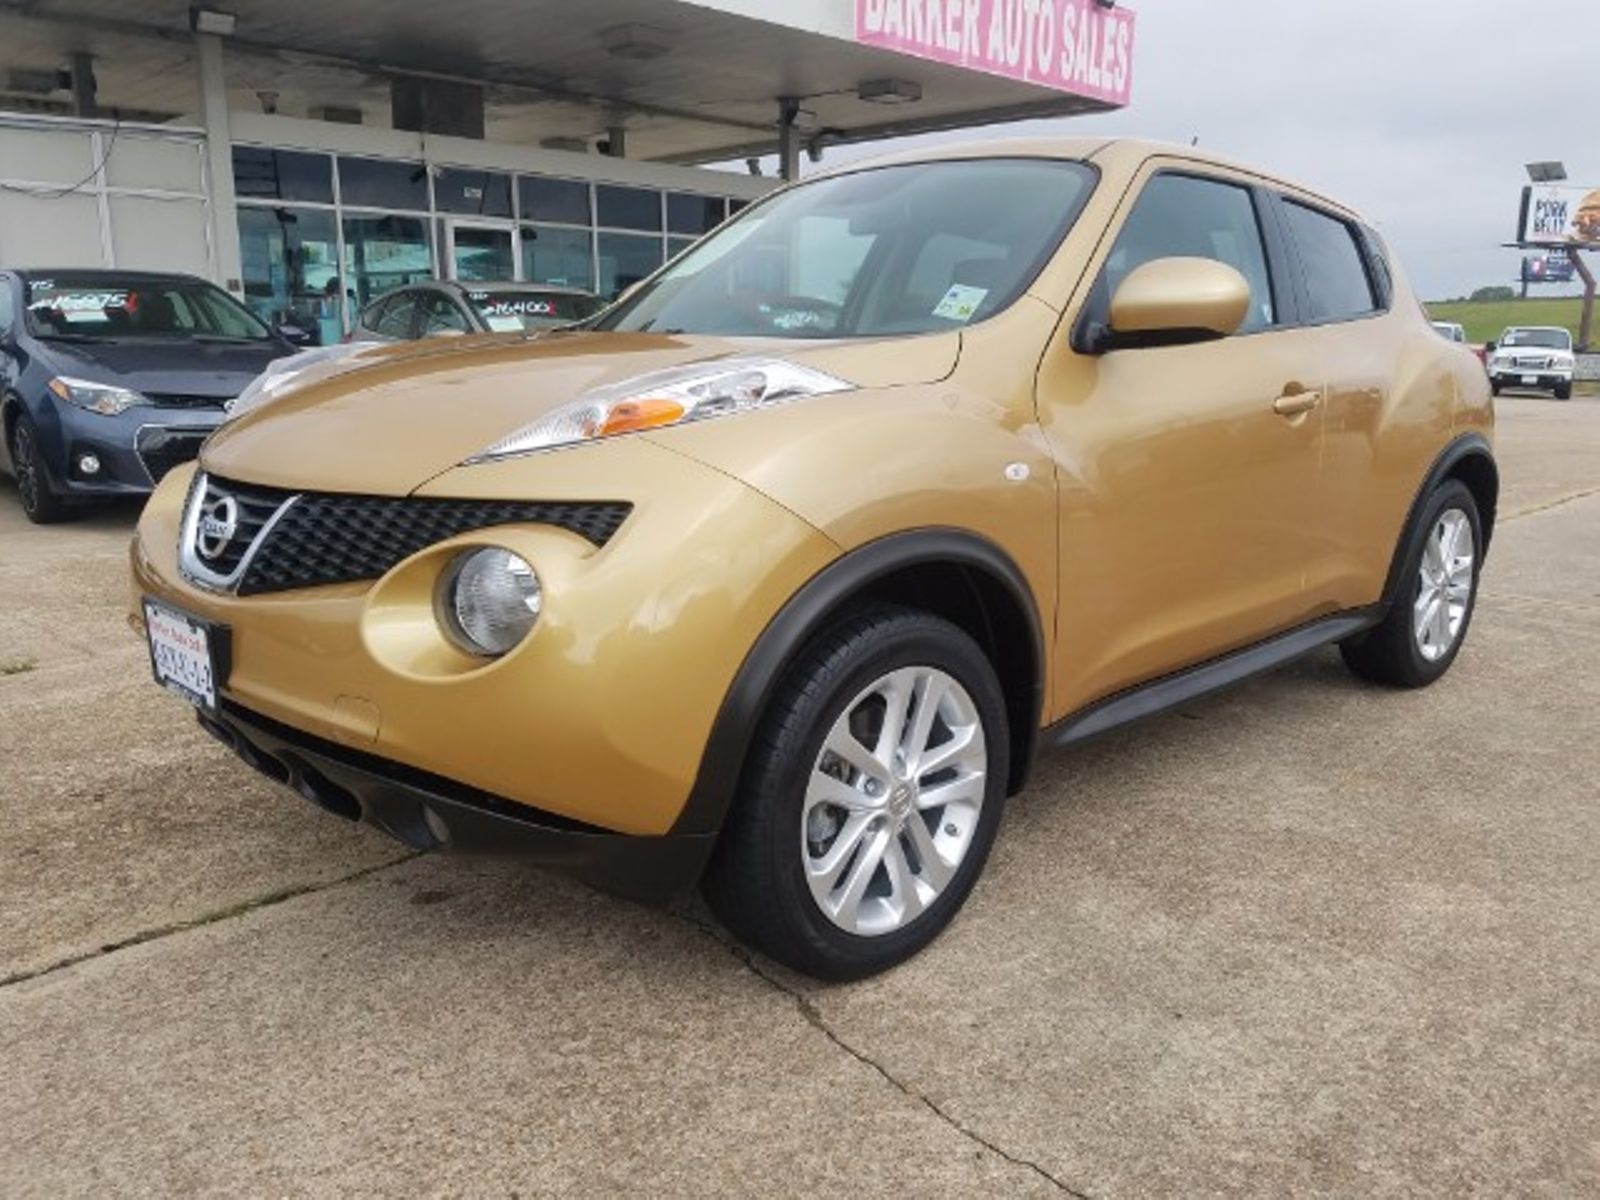 juke cvt green xtronic suv amazing sv nissan with miles awesomeamazinggreat product cyl i